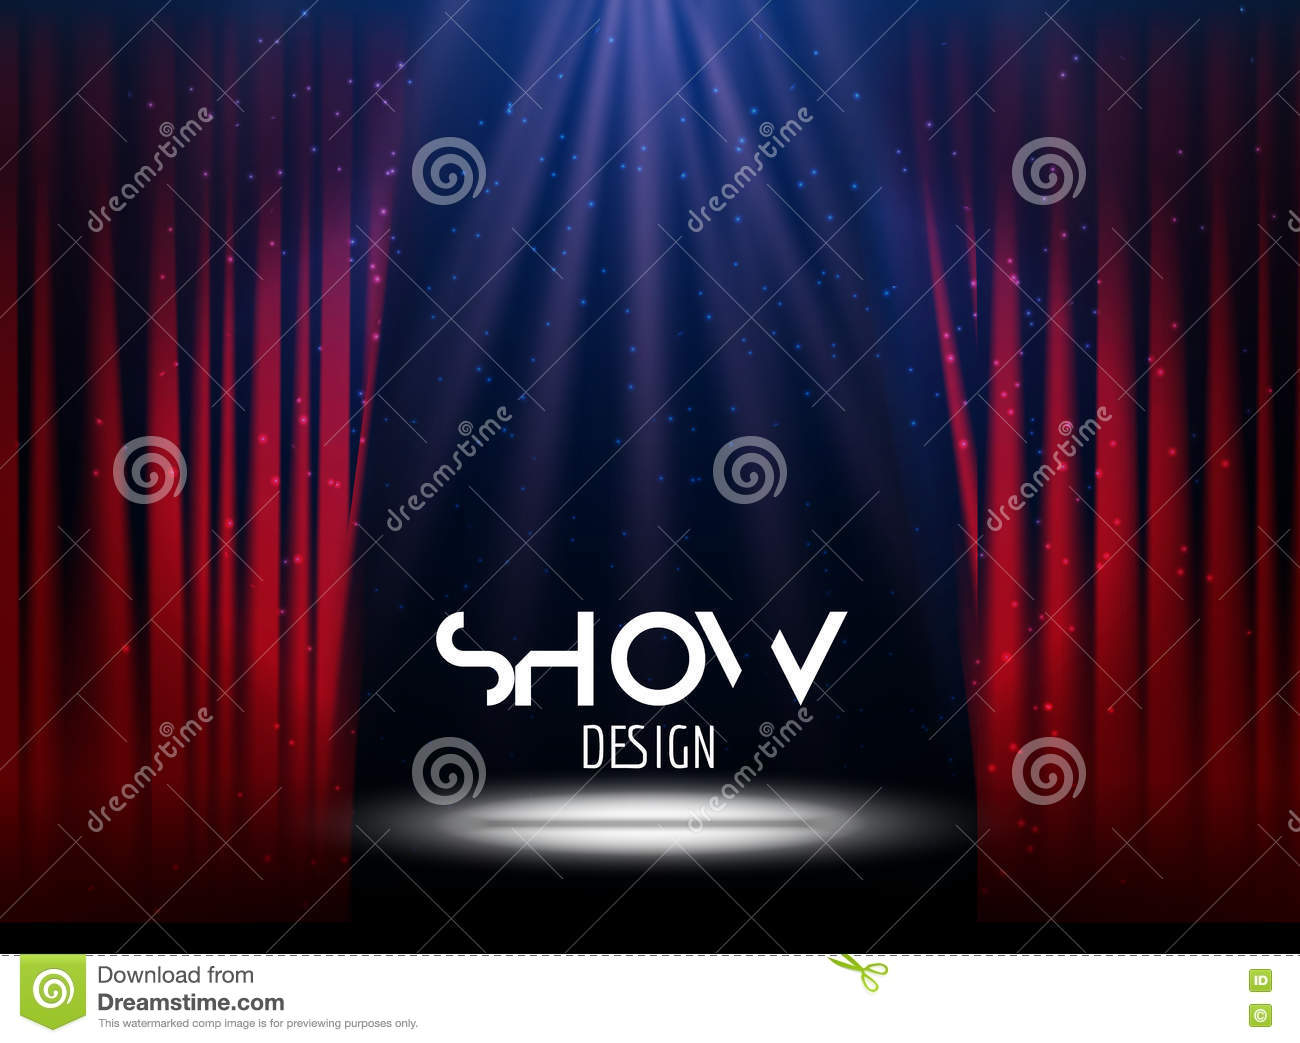 Vector Festive Design With Lights Poster For Concert